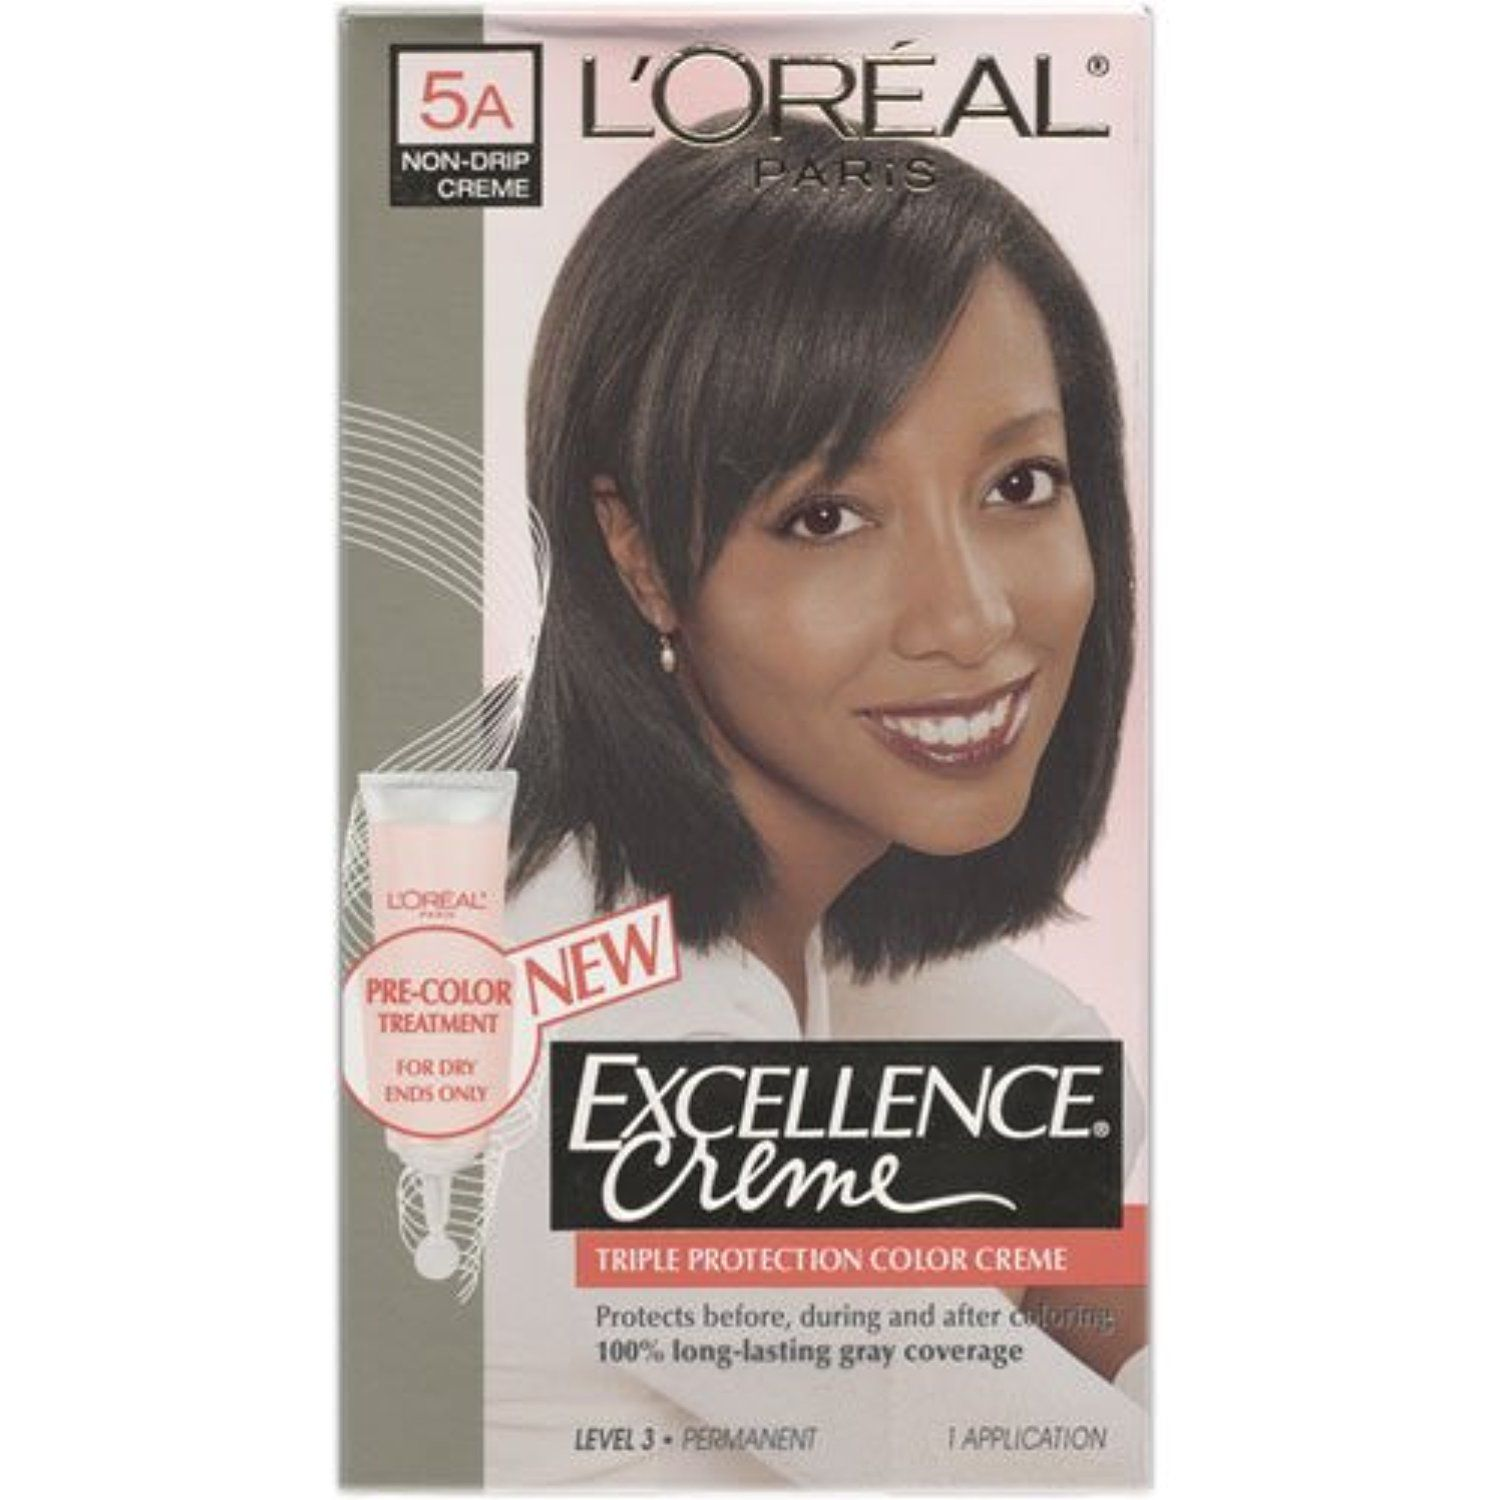 Loreal Excellence Triple Protection Hair Color Creme 5a Soft Ash